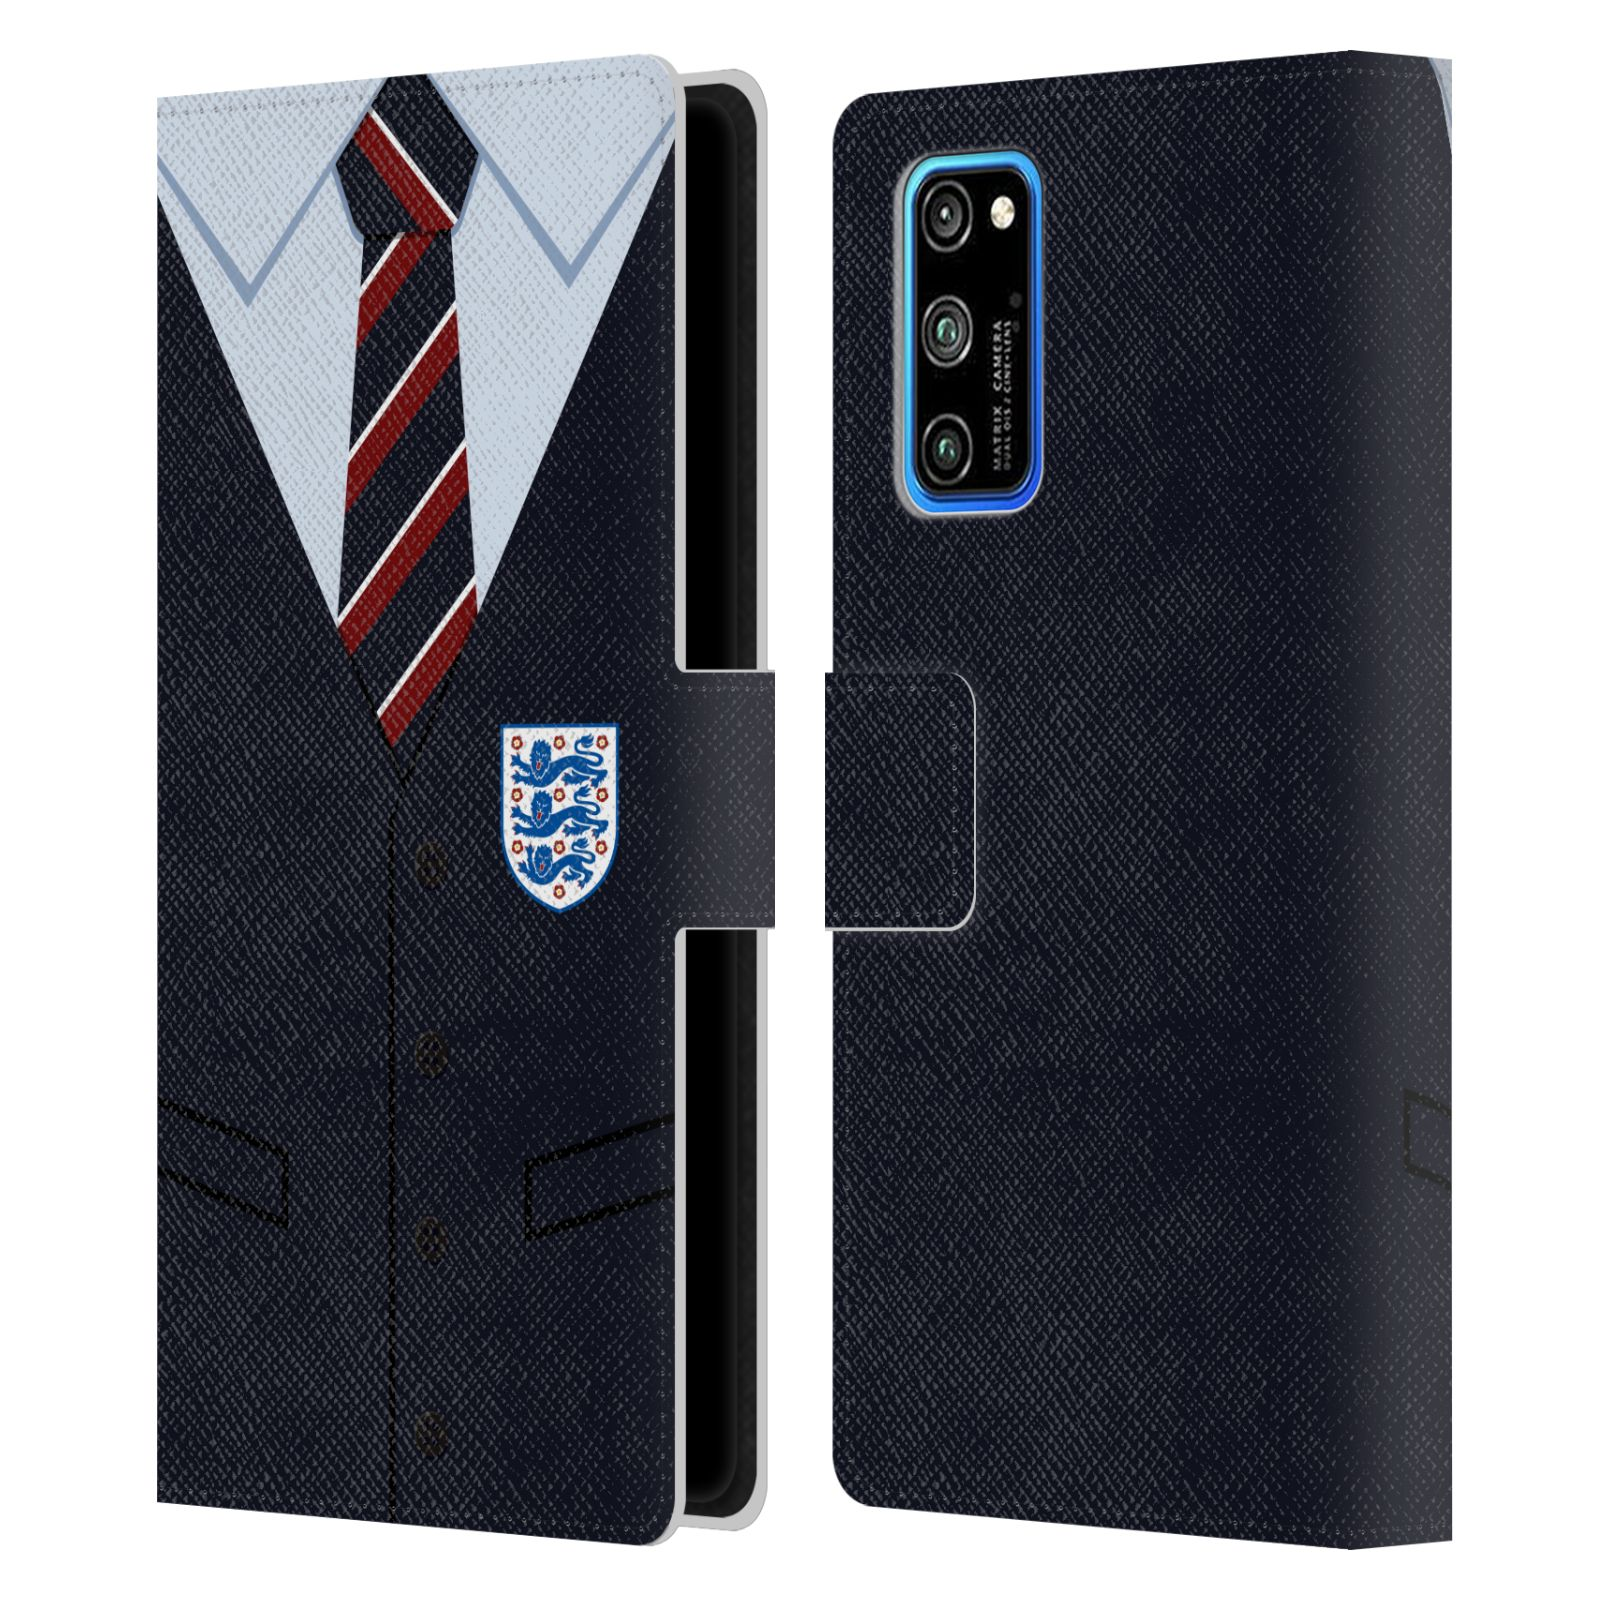 Official England National Football Team 2018/19 Crest Southgate Waistcoat Leather Book Wallet Case For Huawei Honor V30 Pro / View 30 Pro